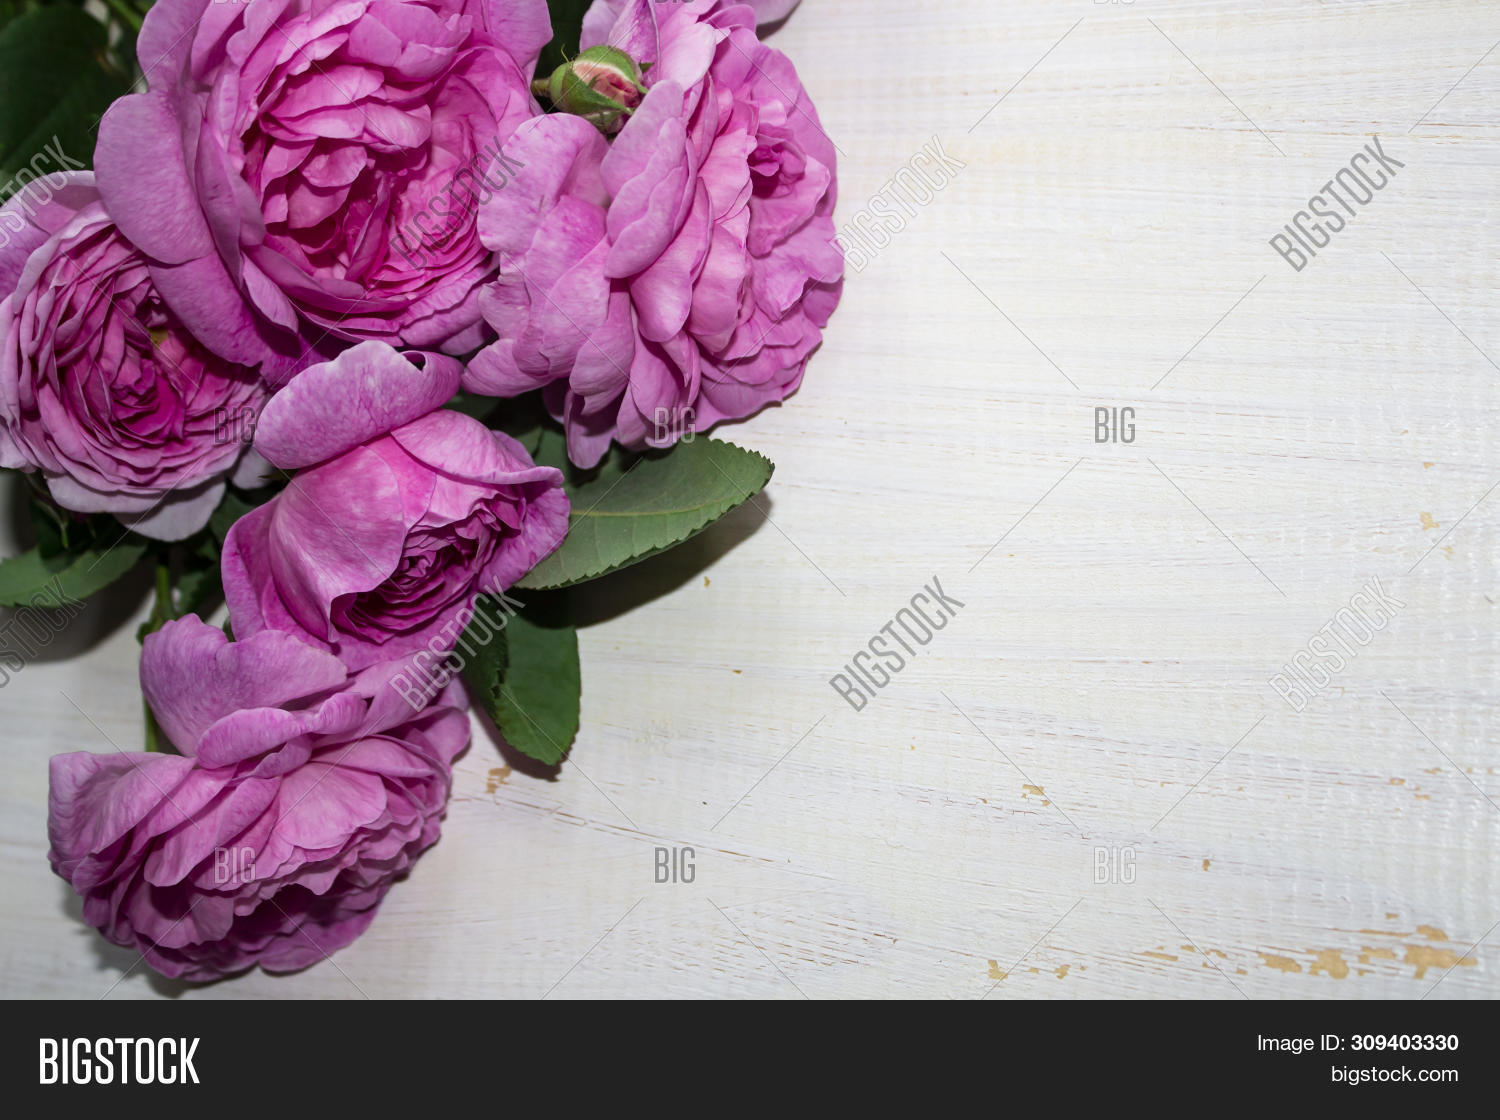 Beautiful Pink Flower Image Photo Free Trial Bigstock